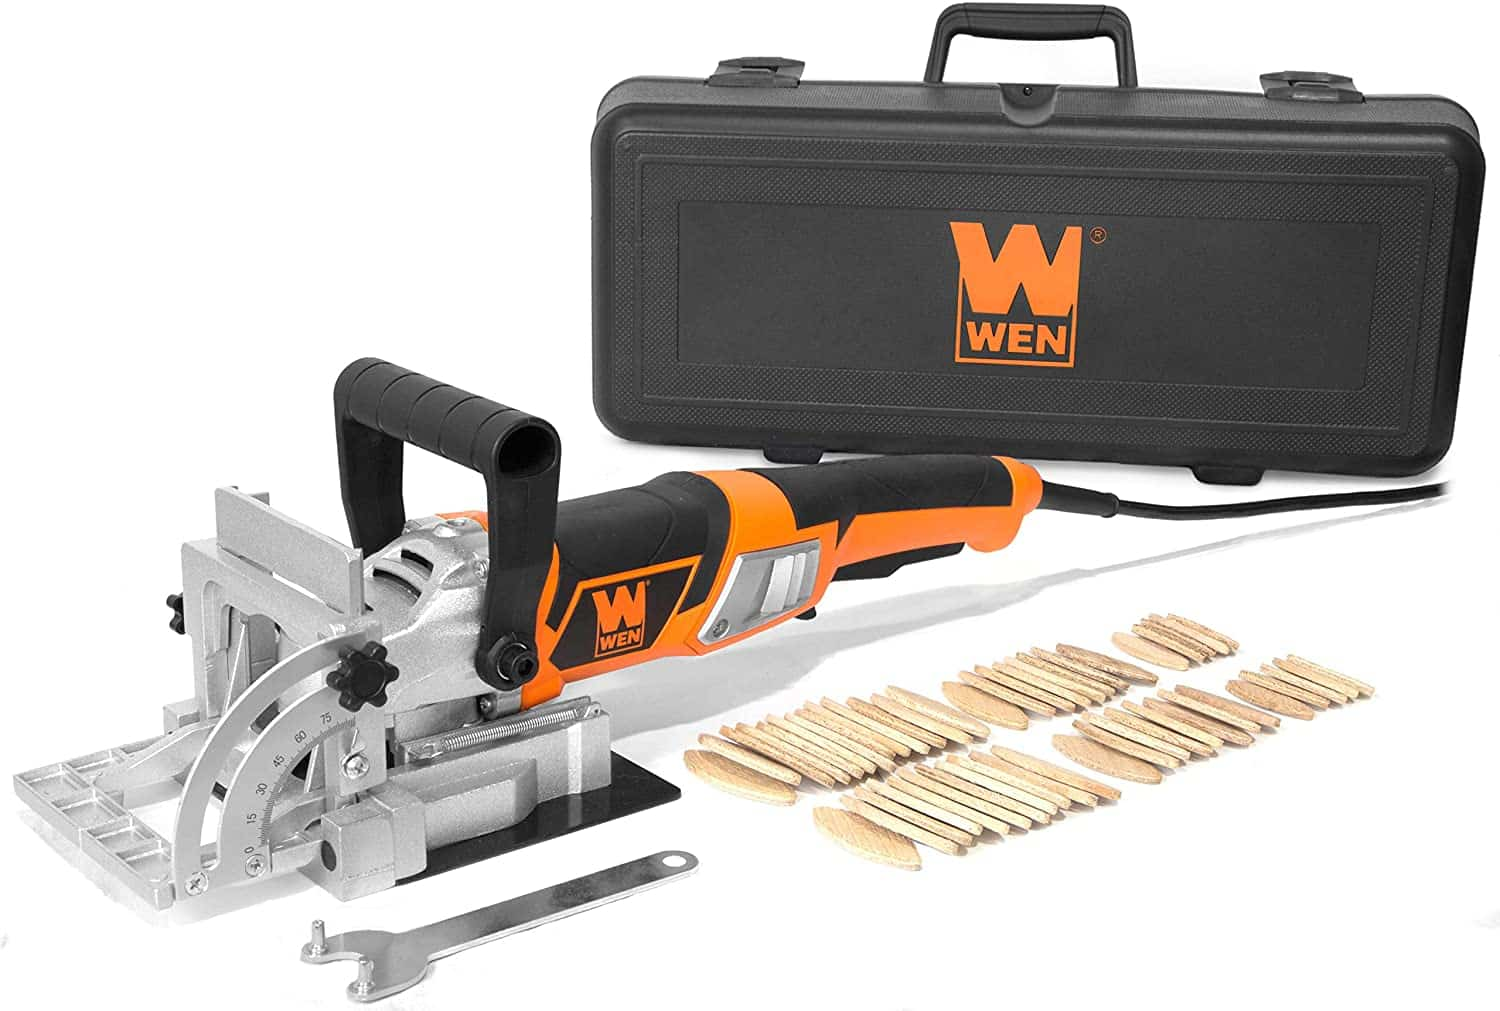 WEN JN8504 8.5-Amp Plate and Biscuit Joiner